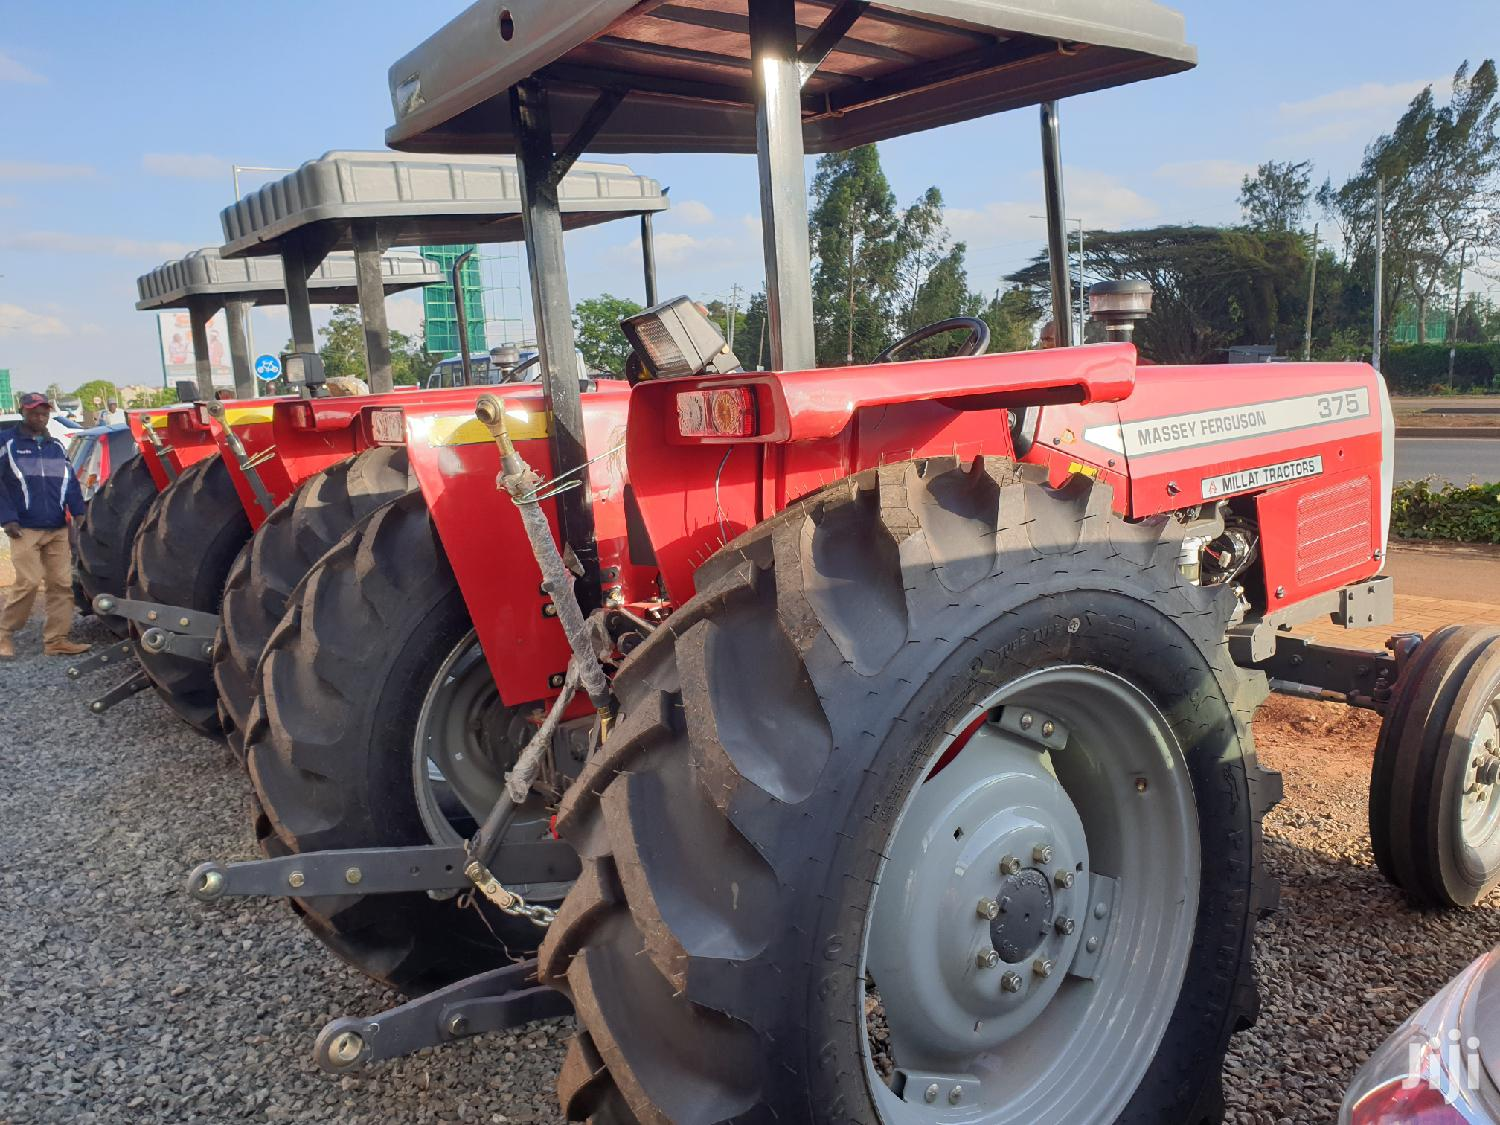 Marssey Ferguson MF 375,385 2WD/4WD And MF 240 2020 Red For Sale | Heavy Equipment for sale in Kilimani, Nairobi, Kenya